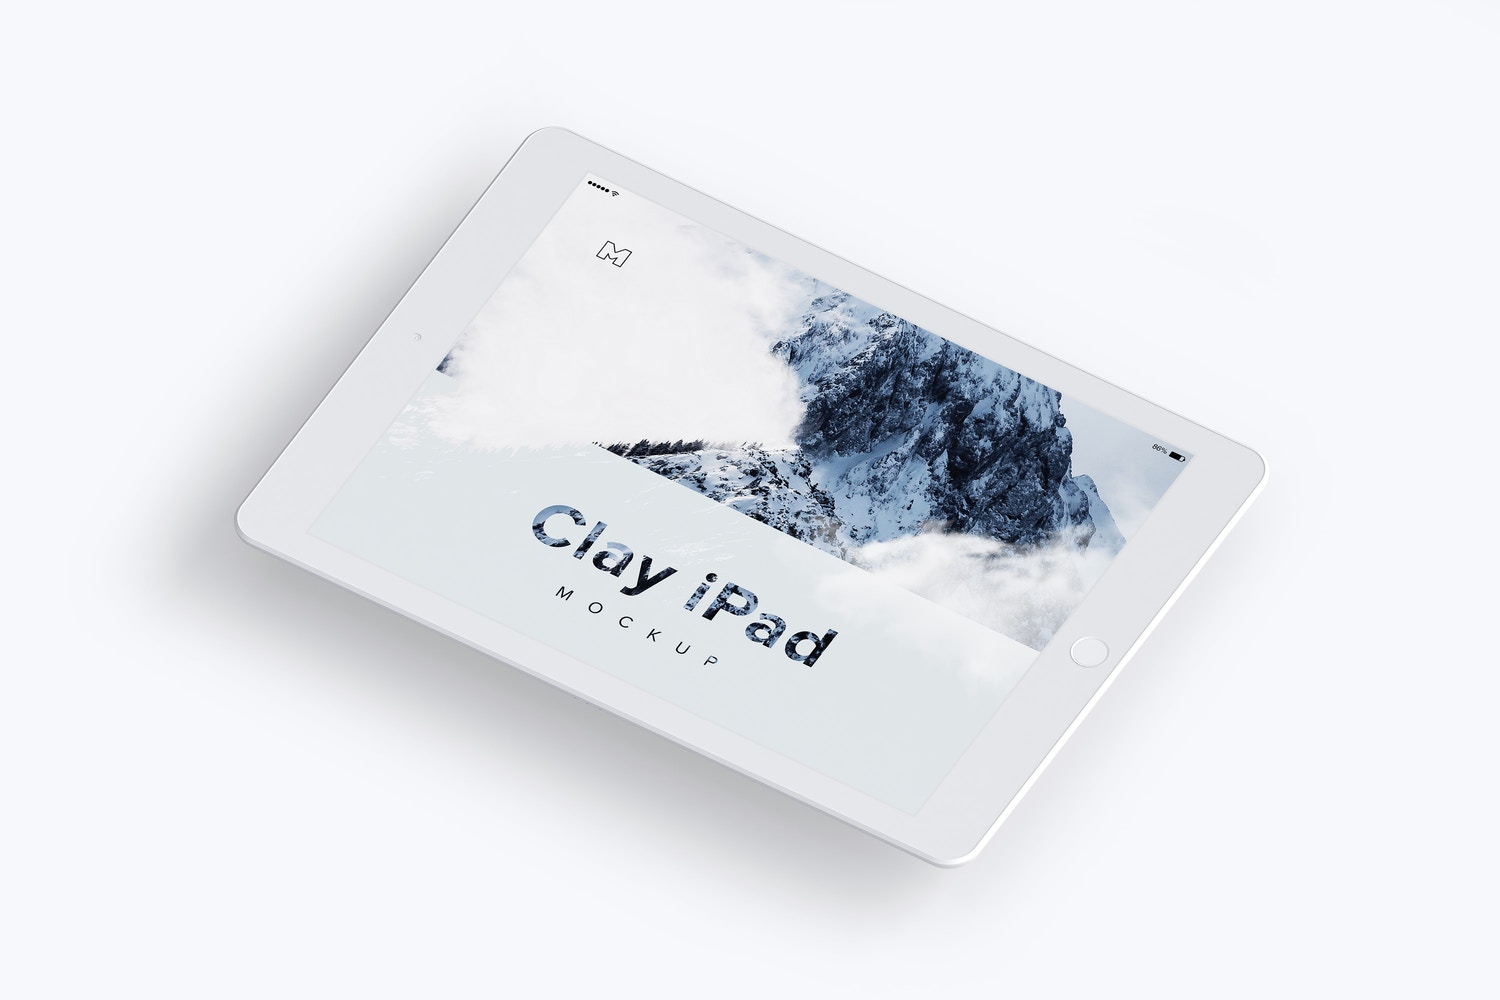 Clay iPad 9.7 Mockup 02 by Original Mockups on Original Mockups